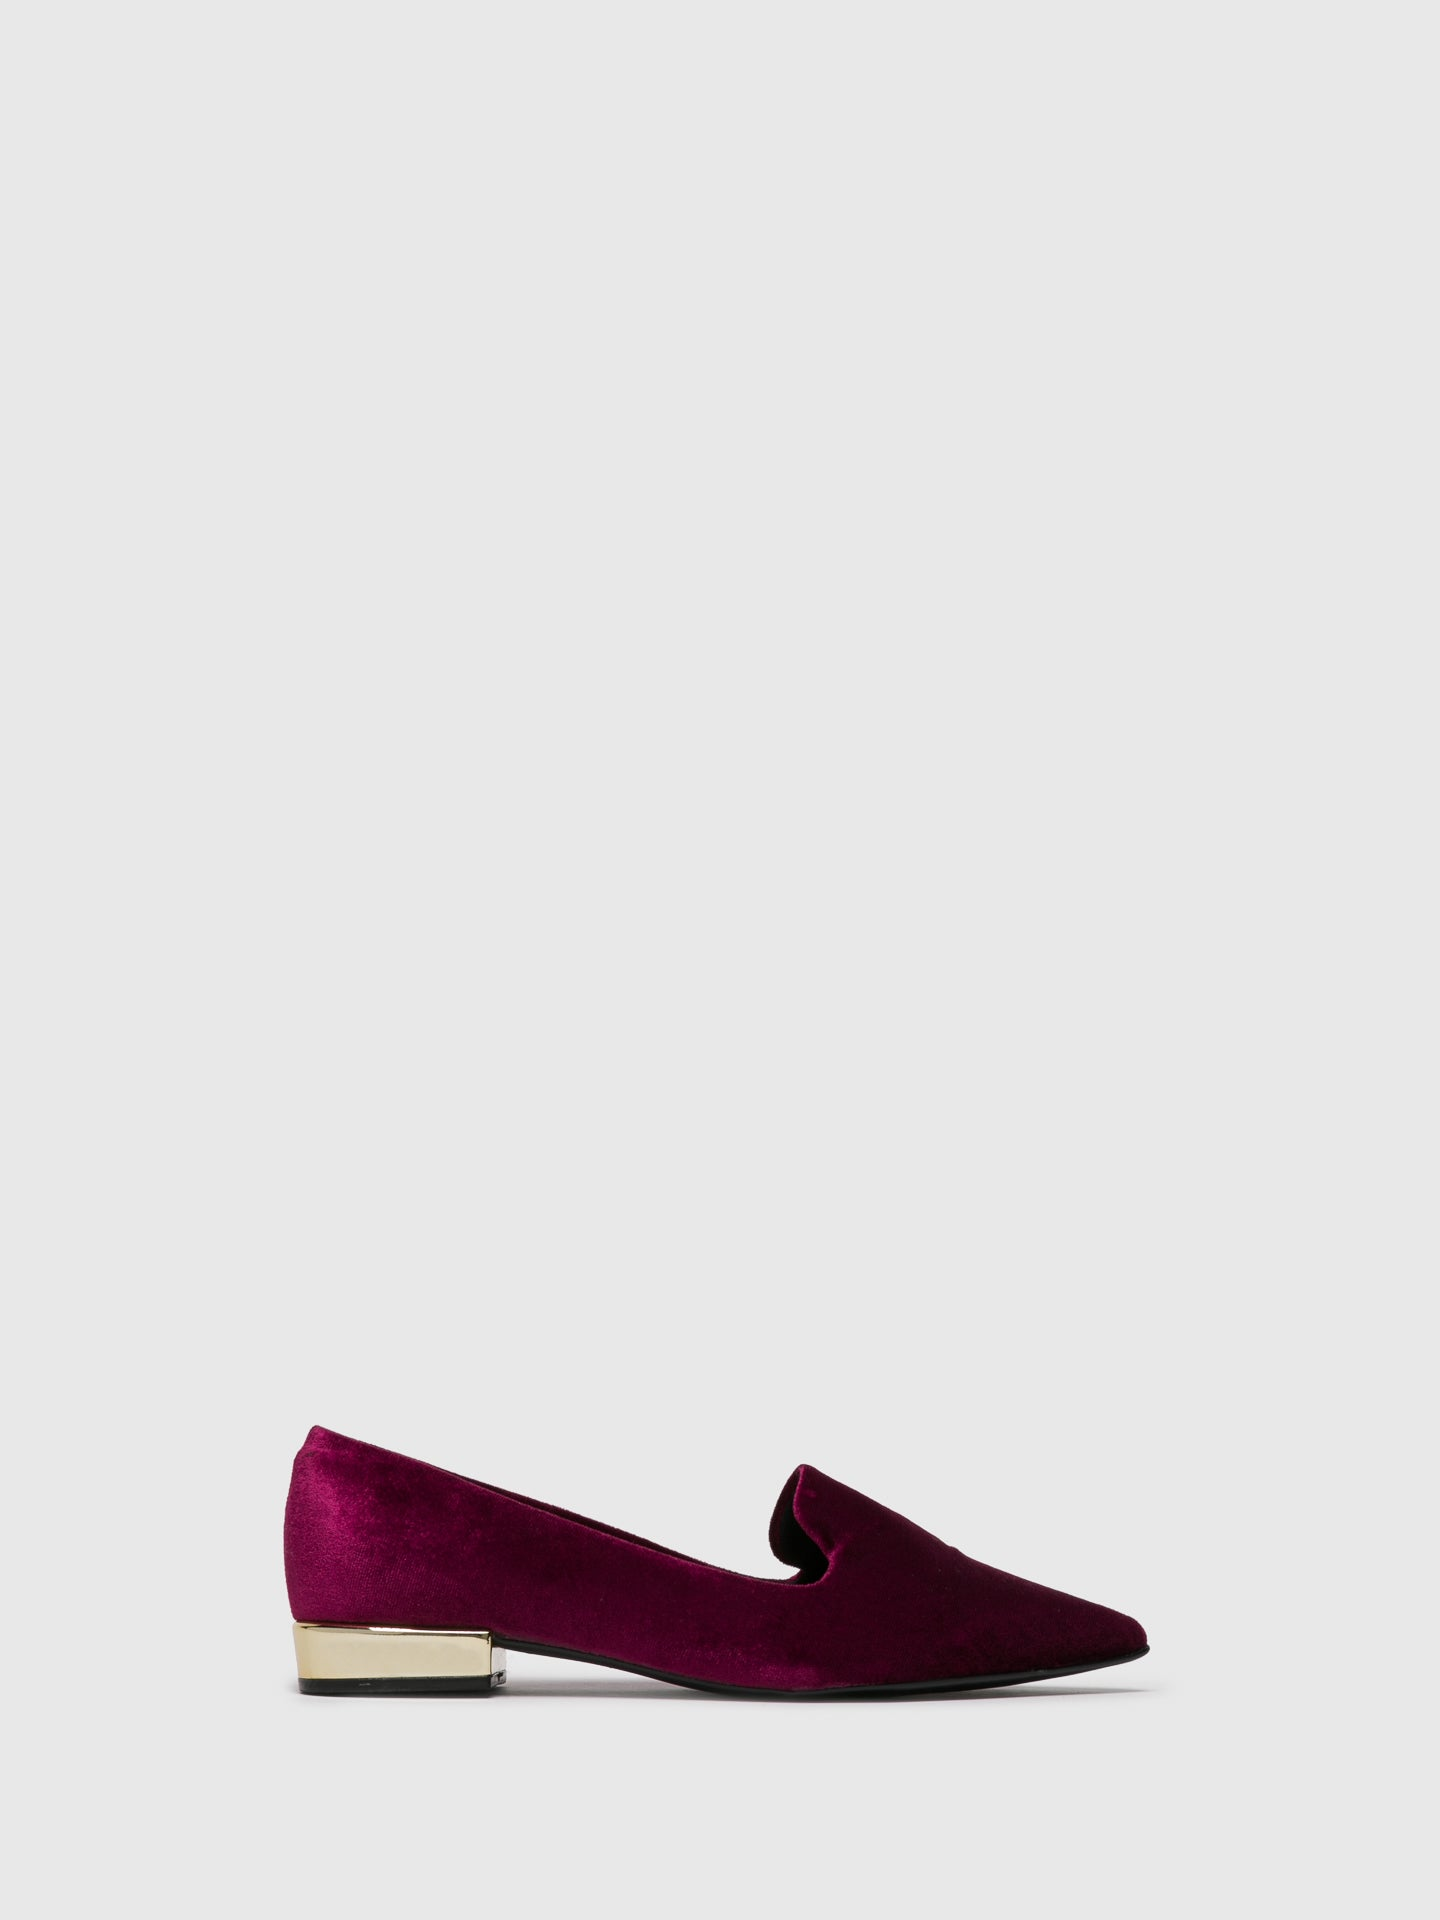 PARODI SUNSHINE DarkRed Pointed Toe Ballerinas